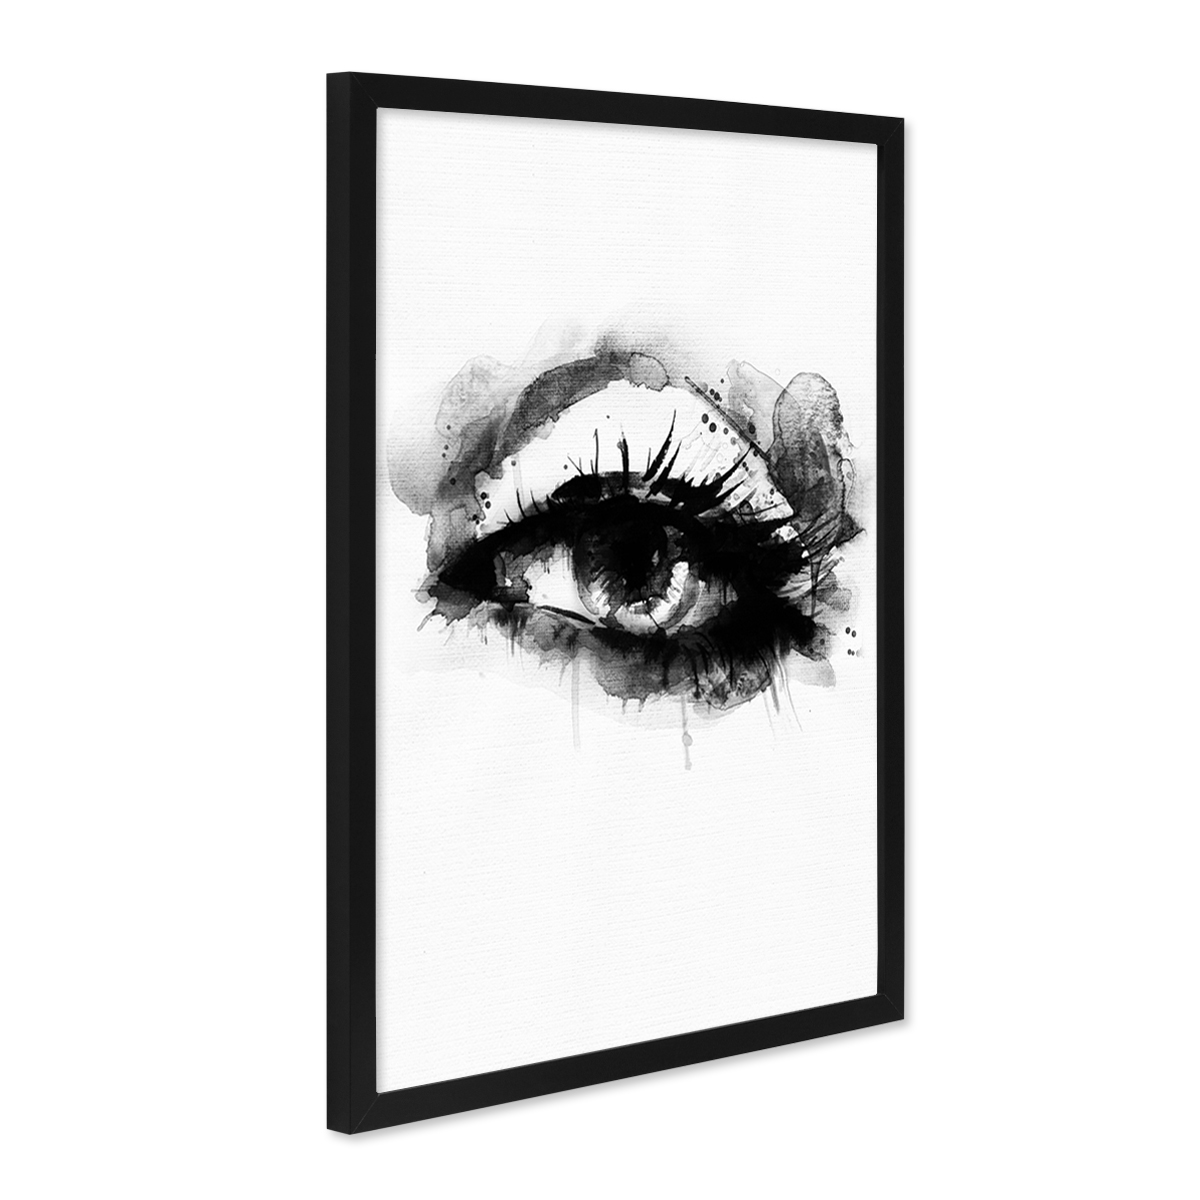 design poster mit bilderrahmen schwarz 39 auge 39 30x40 cm schwarz weiss motiv aquarell frauenauge. Black Bedroom Furniture Sets. Home Design Ideas